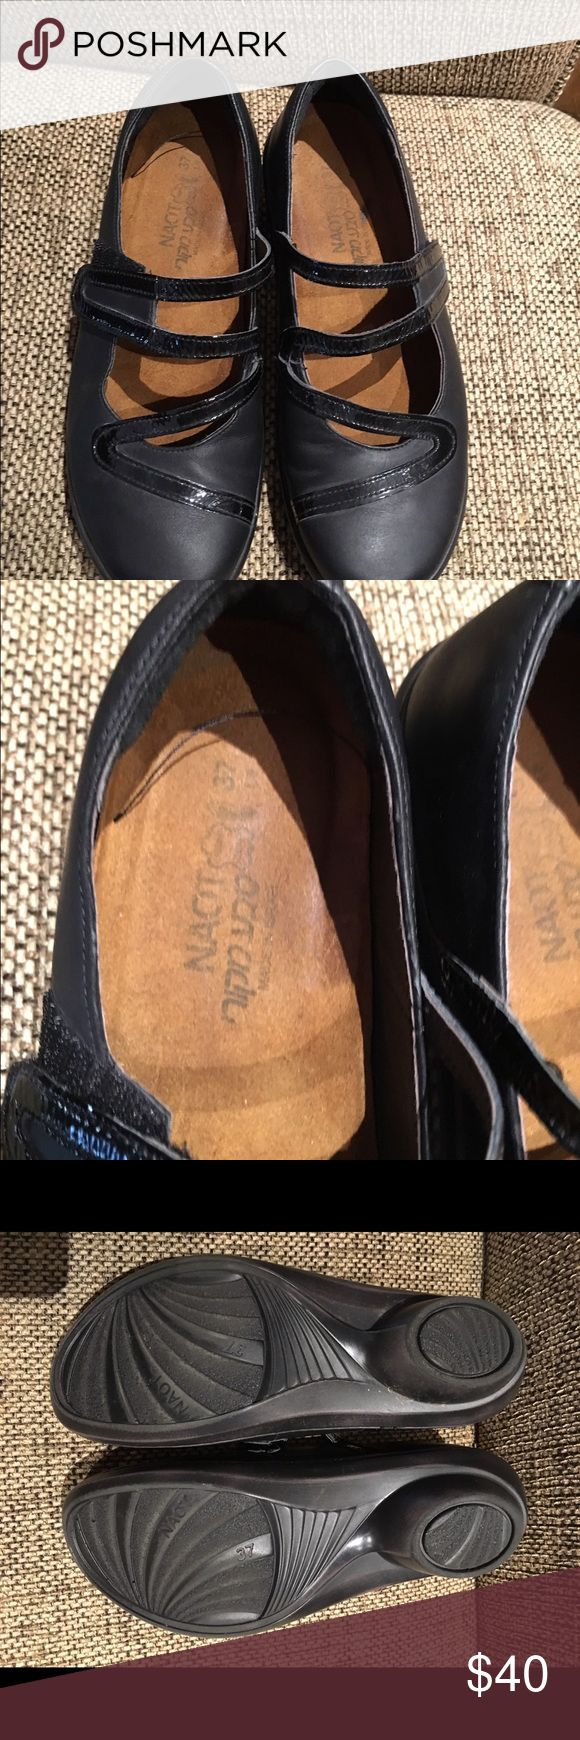 Naot shoes Black and the swirled design is like patten leather. They are like brand new! Naot Shoes Flats & Loafers